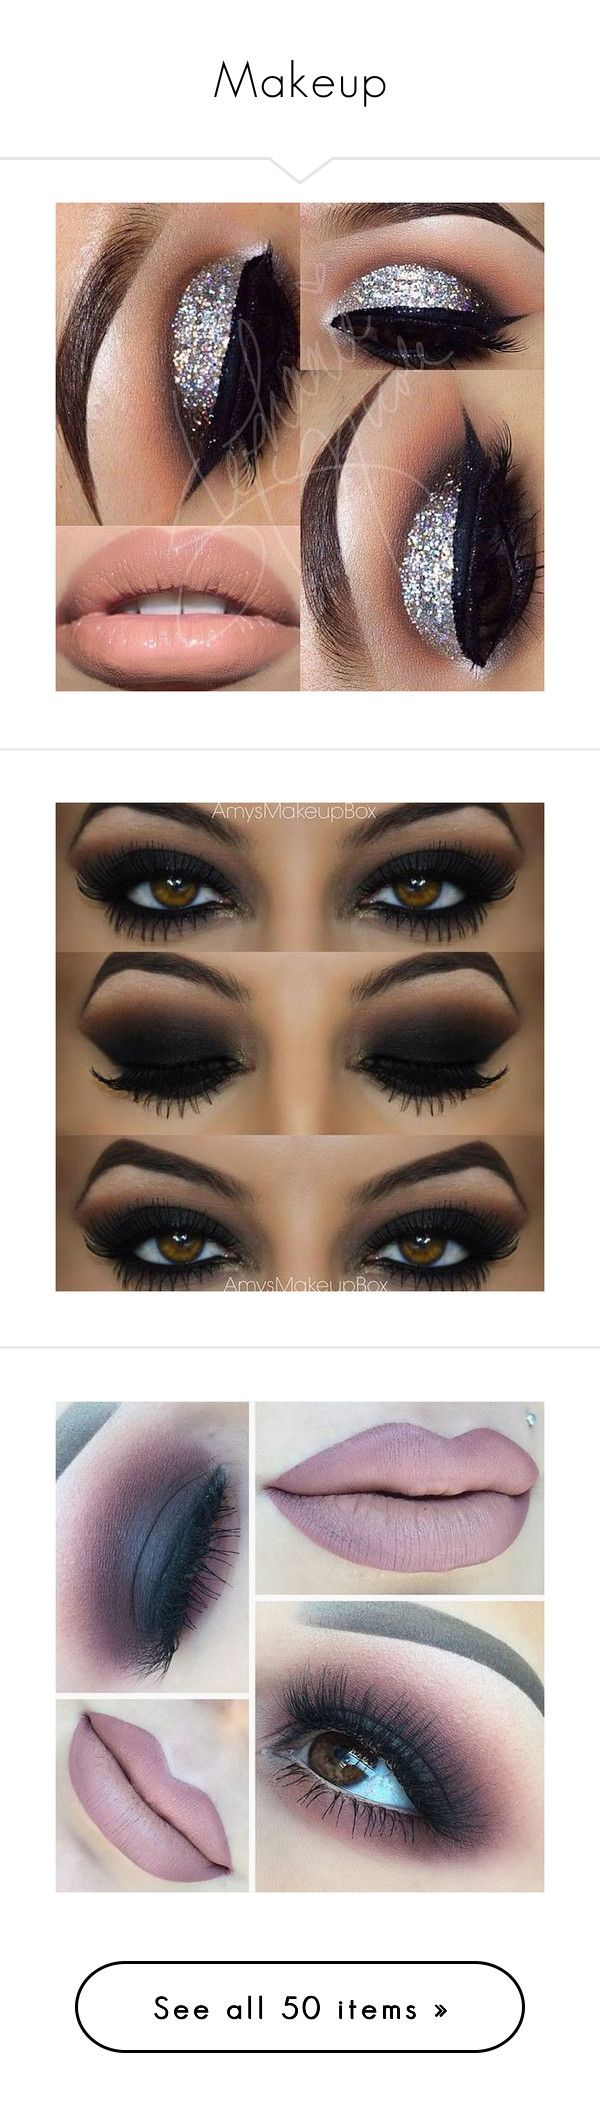 """""""Makeup"""" by mirah123 ❤ liked on Polyvore featuring beauty products, makeup, lip makeup, eye makeup, eyeshadow, eyes, lips, beauty, palette eyeshadow and false eyelashes"""